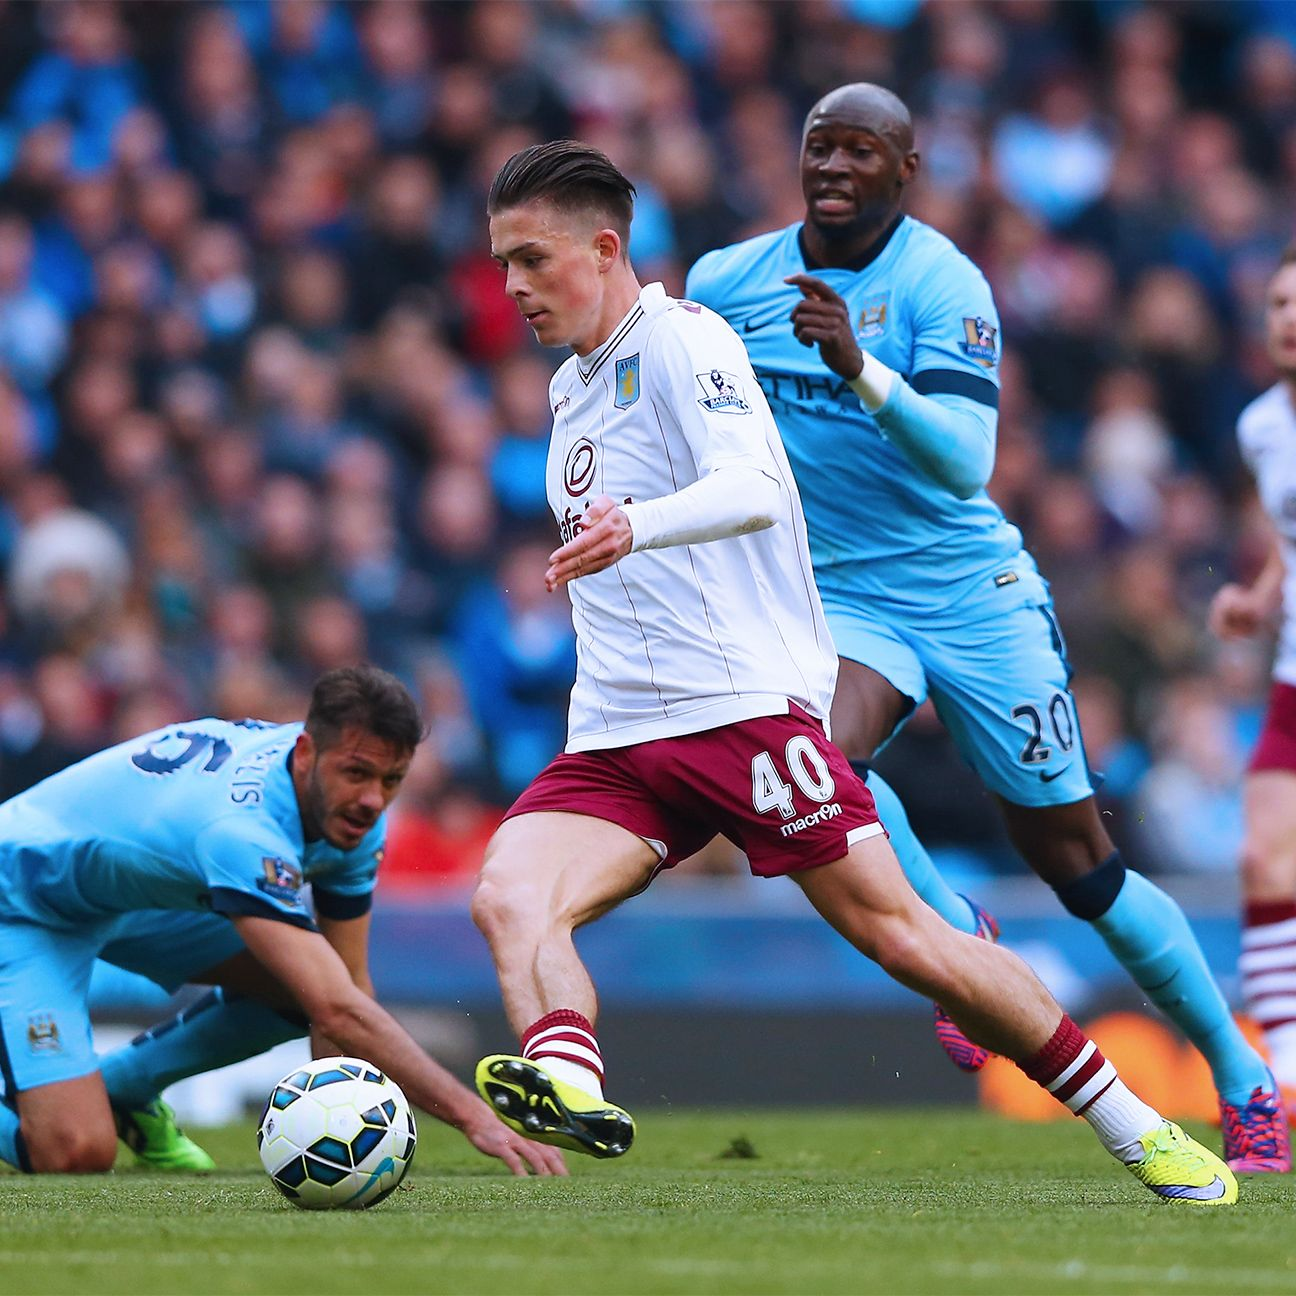 Jack Grealish built upon his dazzling display at Wembley with another assured performance versus City.